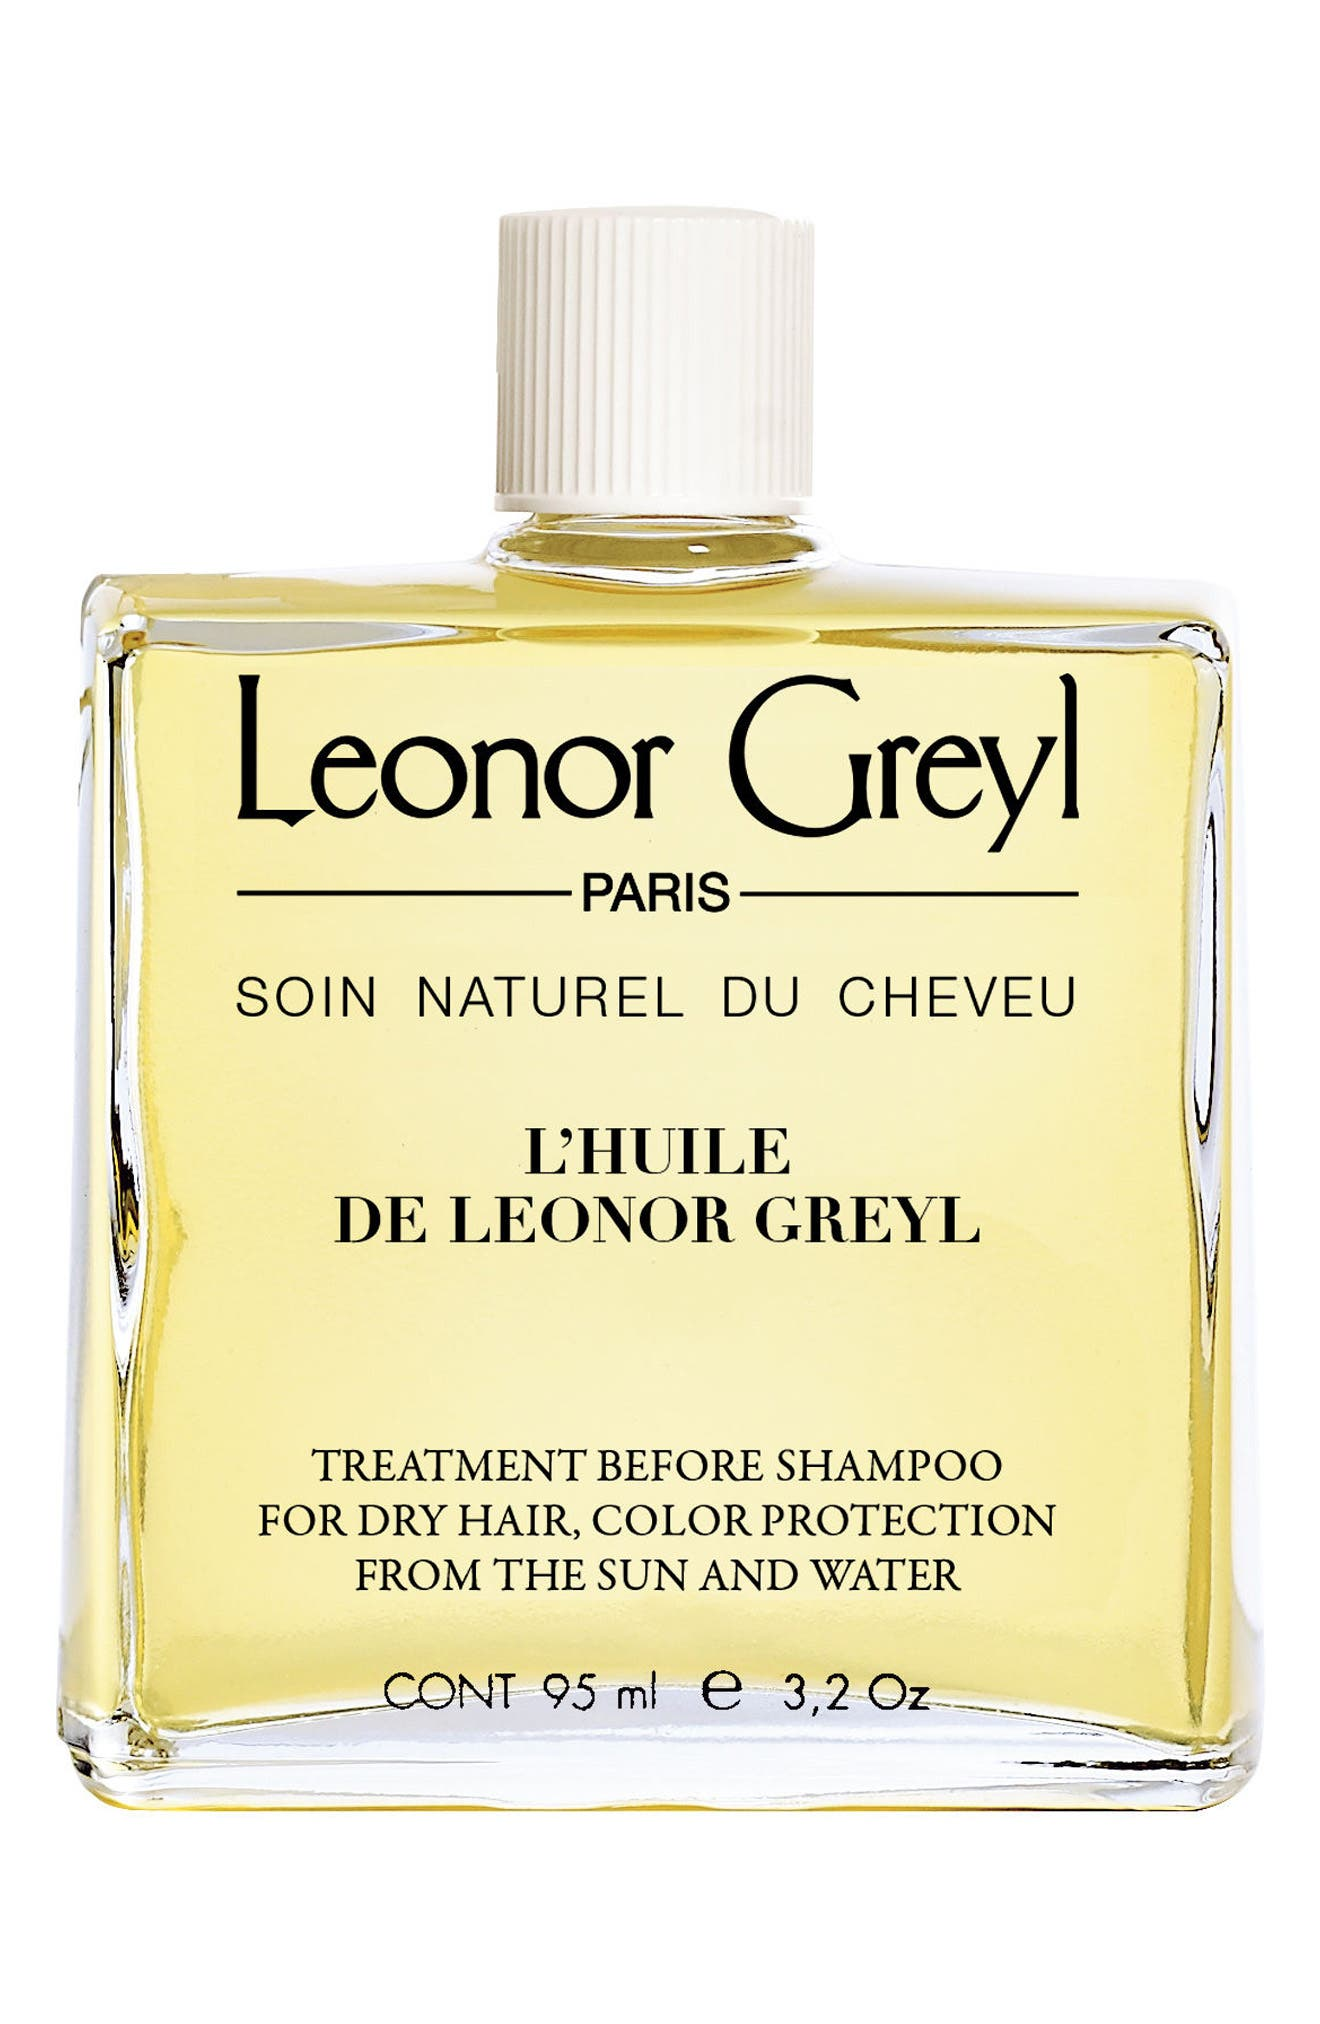 LEONOR GREYL Treatment Before Shampoo For Dry Hair, Color Protection From The Sun & Water